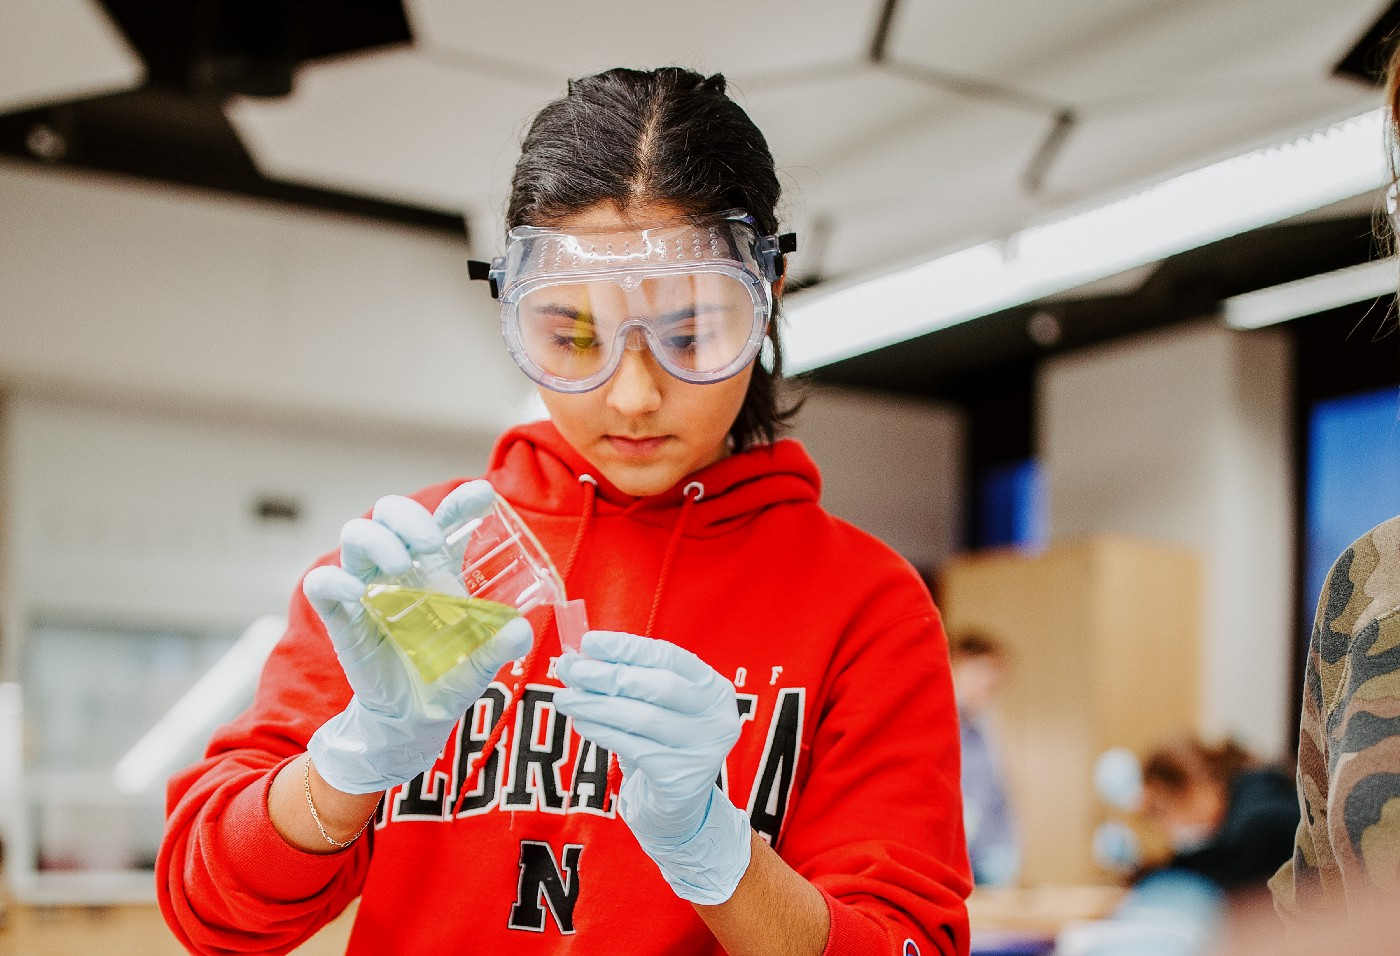 Sophia Deras transfers her solution in a Chem 109 lab to determine absorption spectra and best wavelengths in different food dyes.